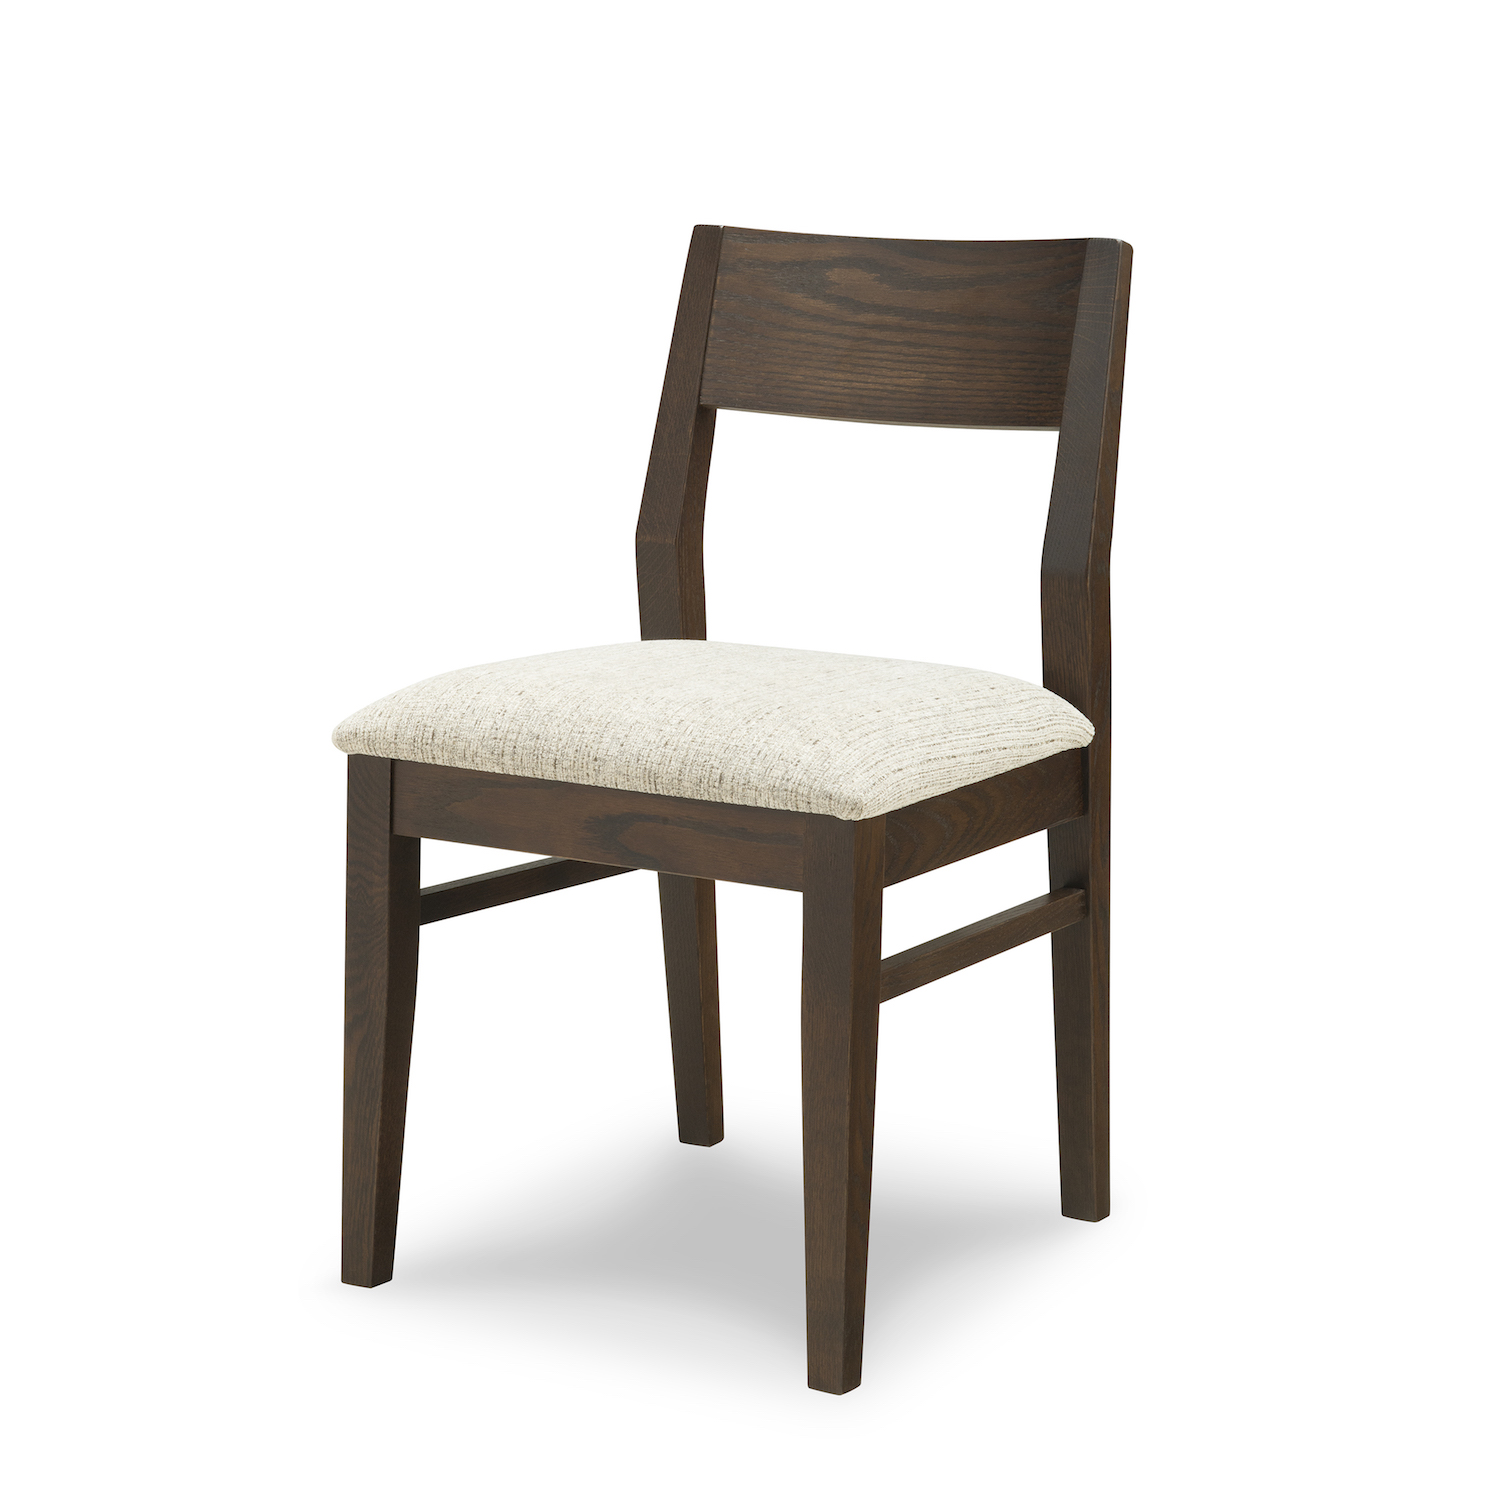 Sydney_Chair_Uph_Seat_Front_Angled-2-1.jpg